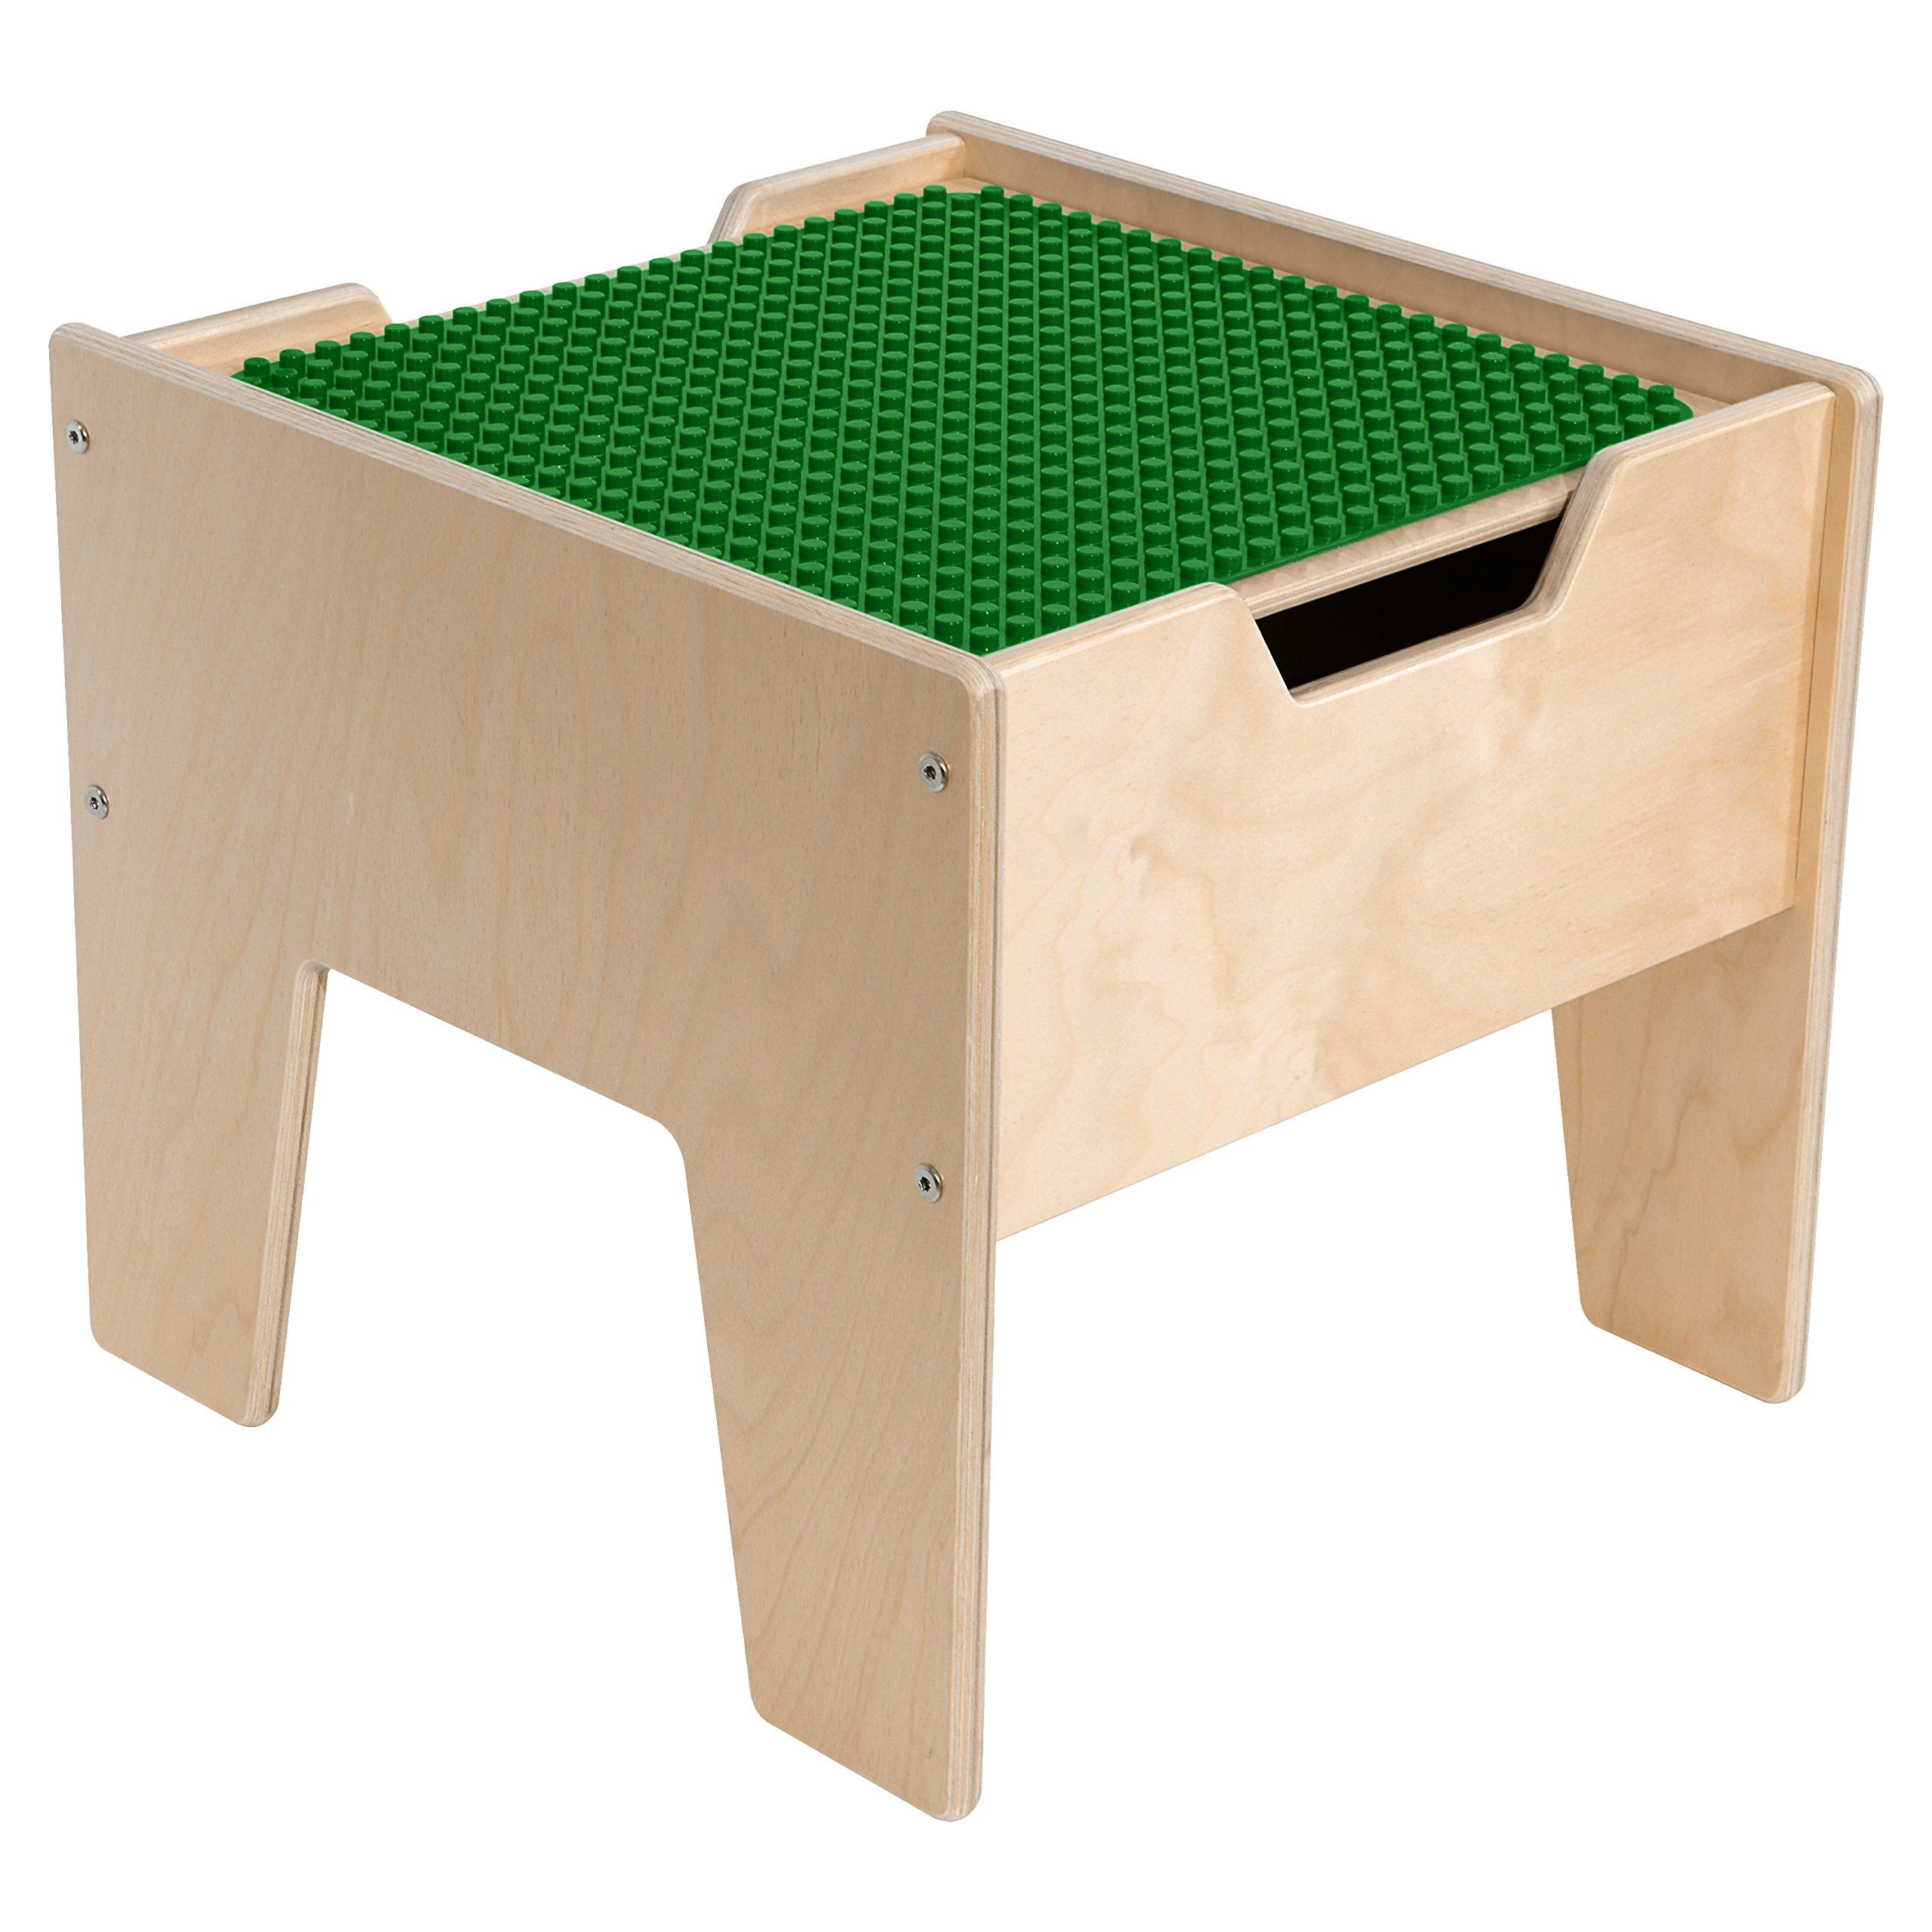 Contender C991300F-PG 2-N-1 Activity Table with DUPLO Compatible Top, Fully Assembled, Wood, Green/Natural